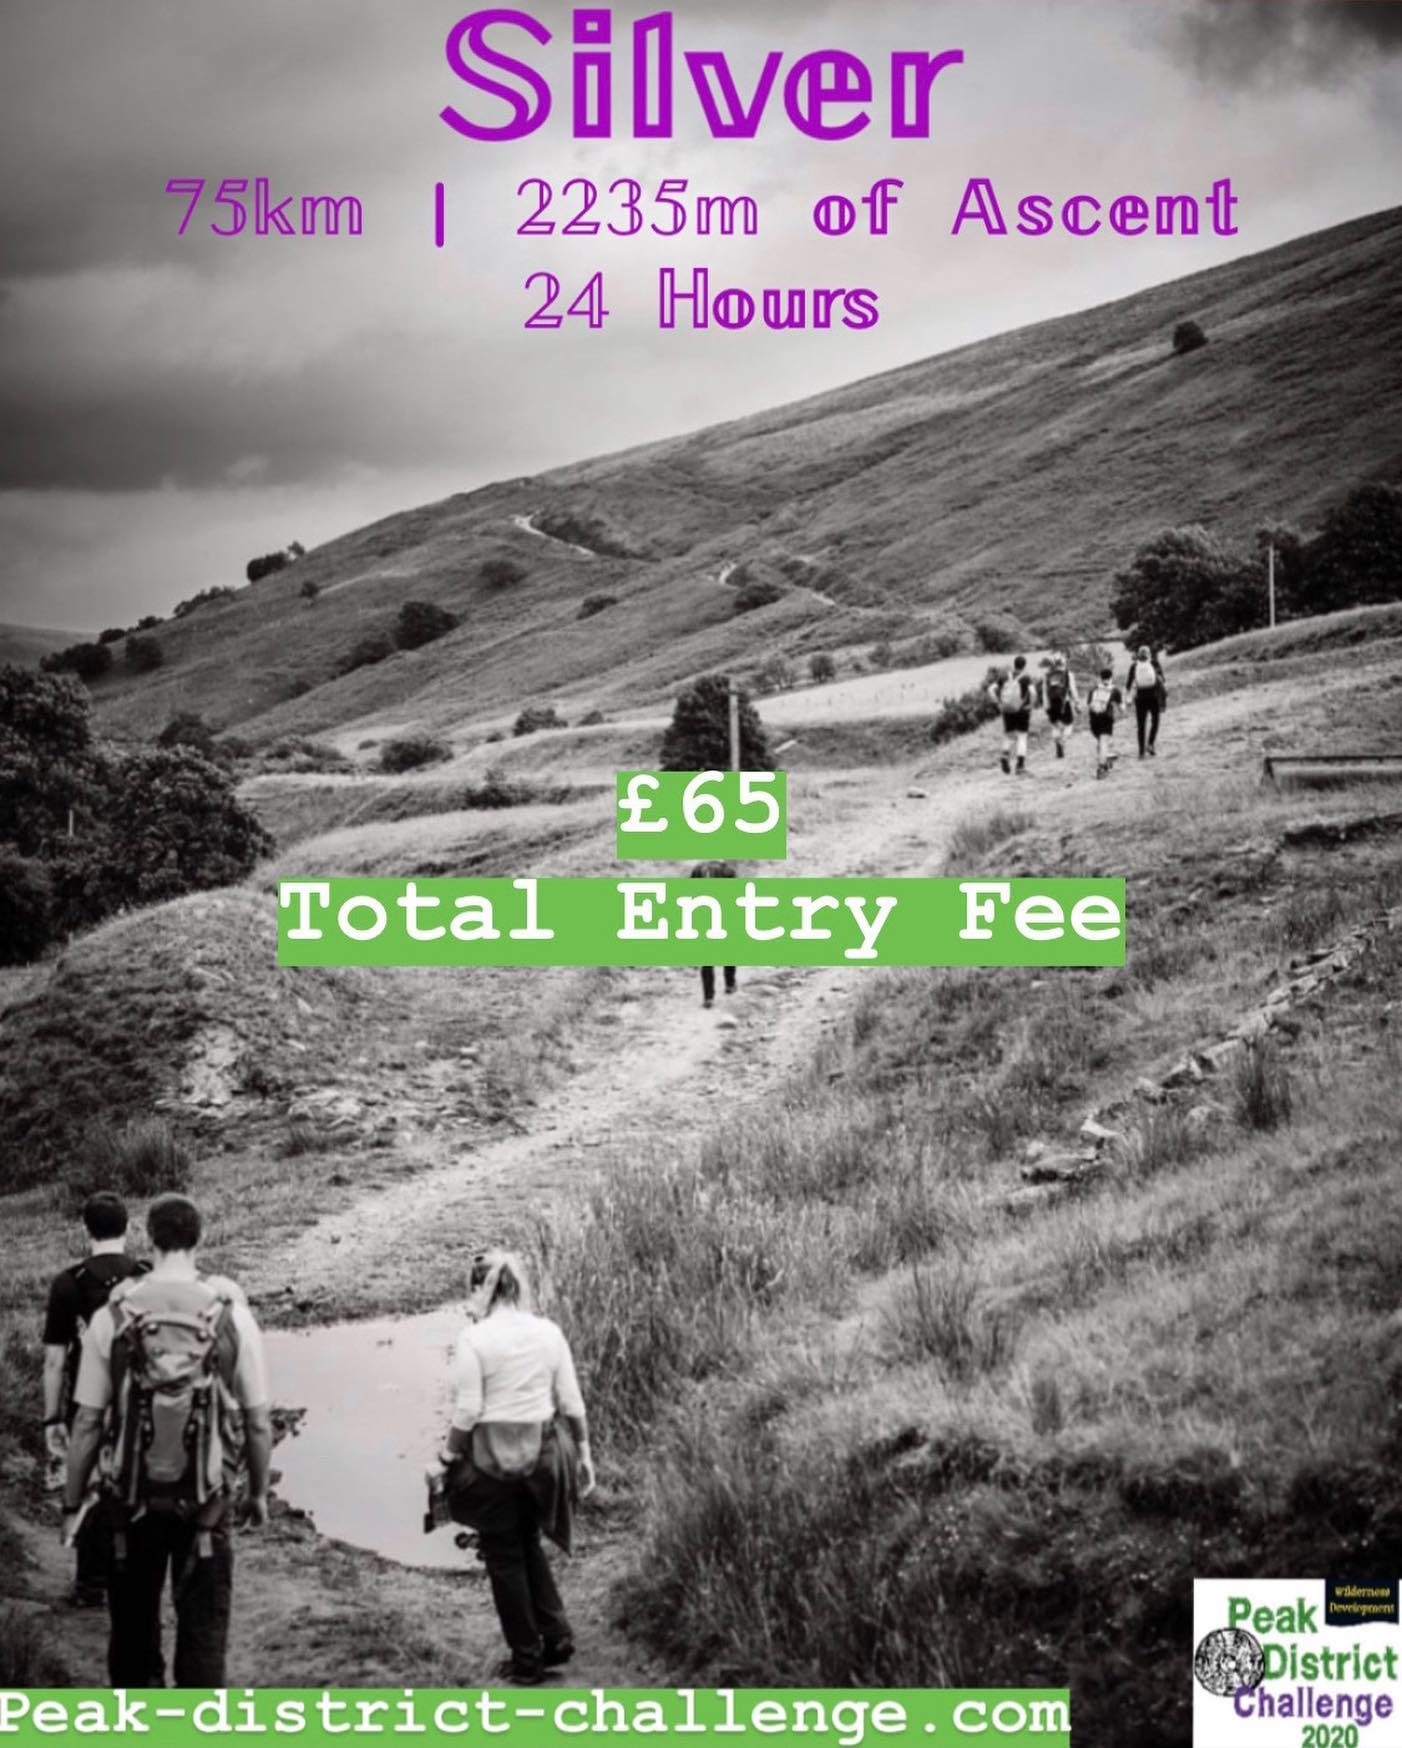 The Peak District Challenge is still taking place in September, registrations remain open at www....